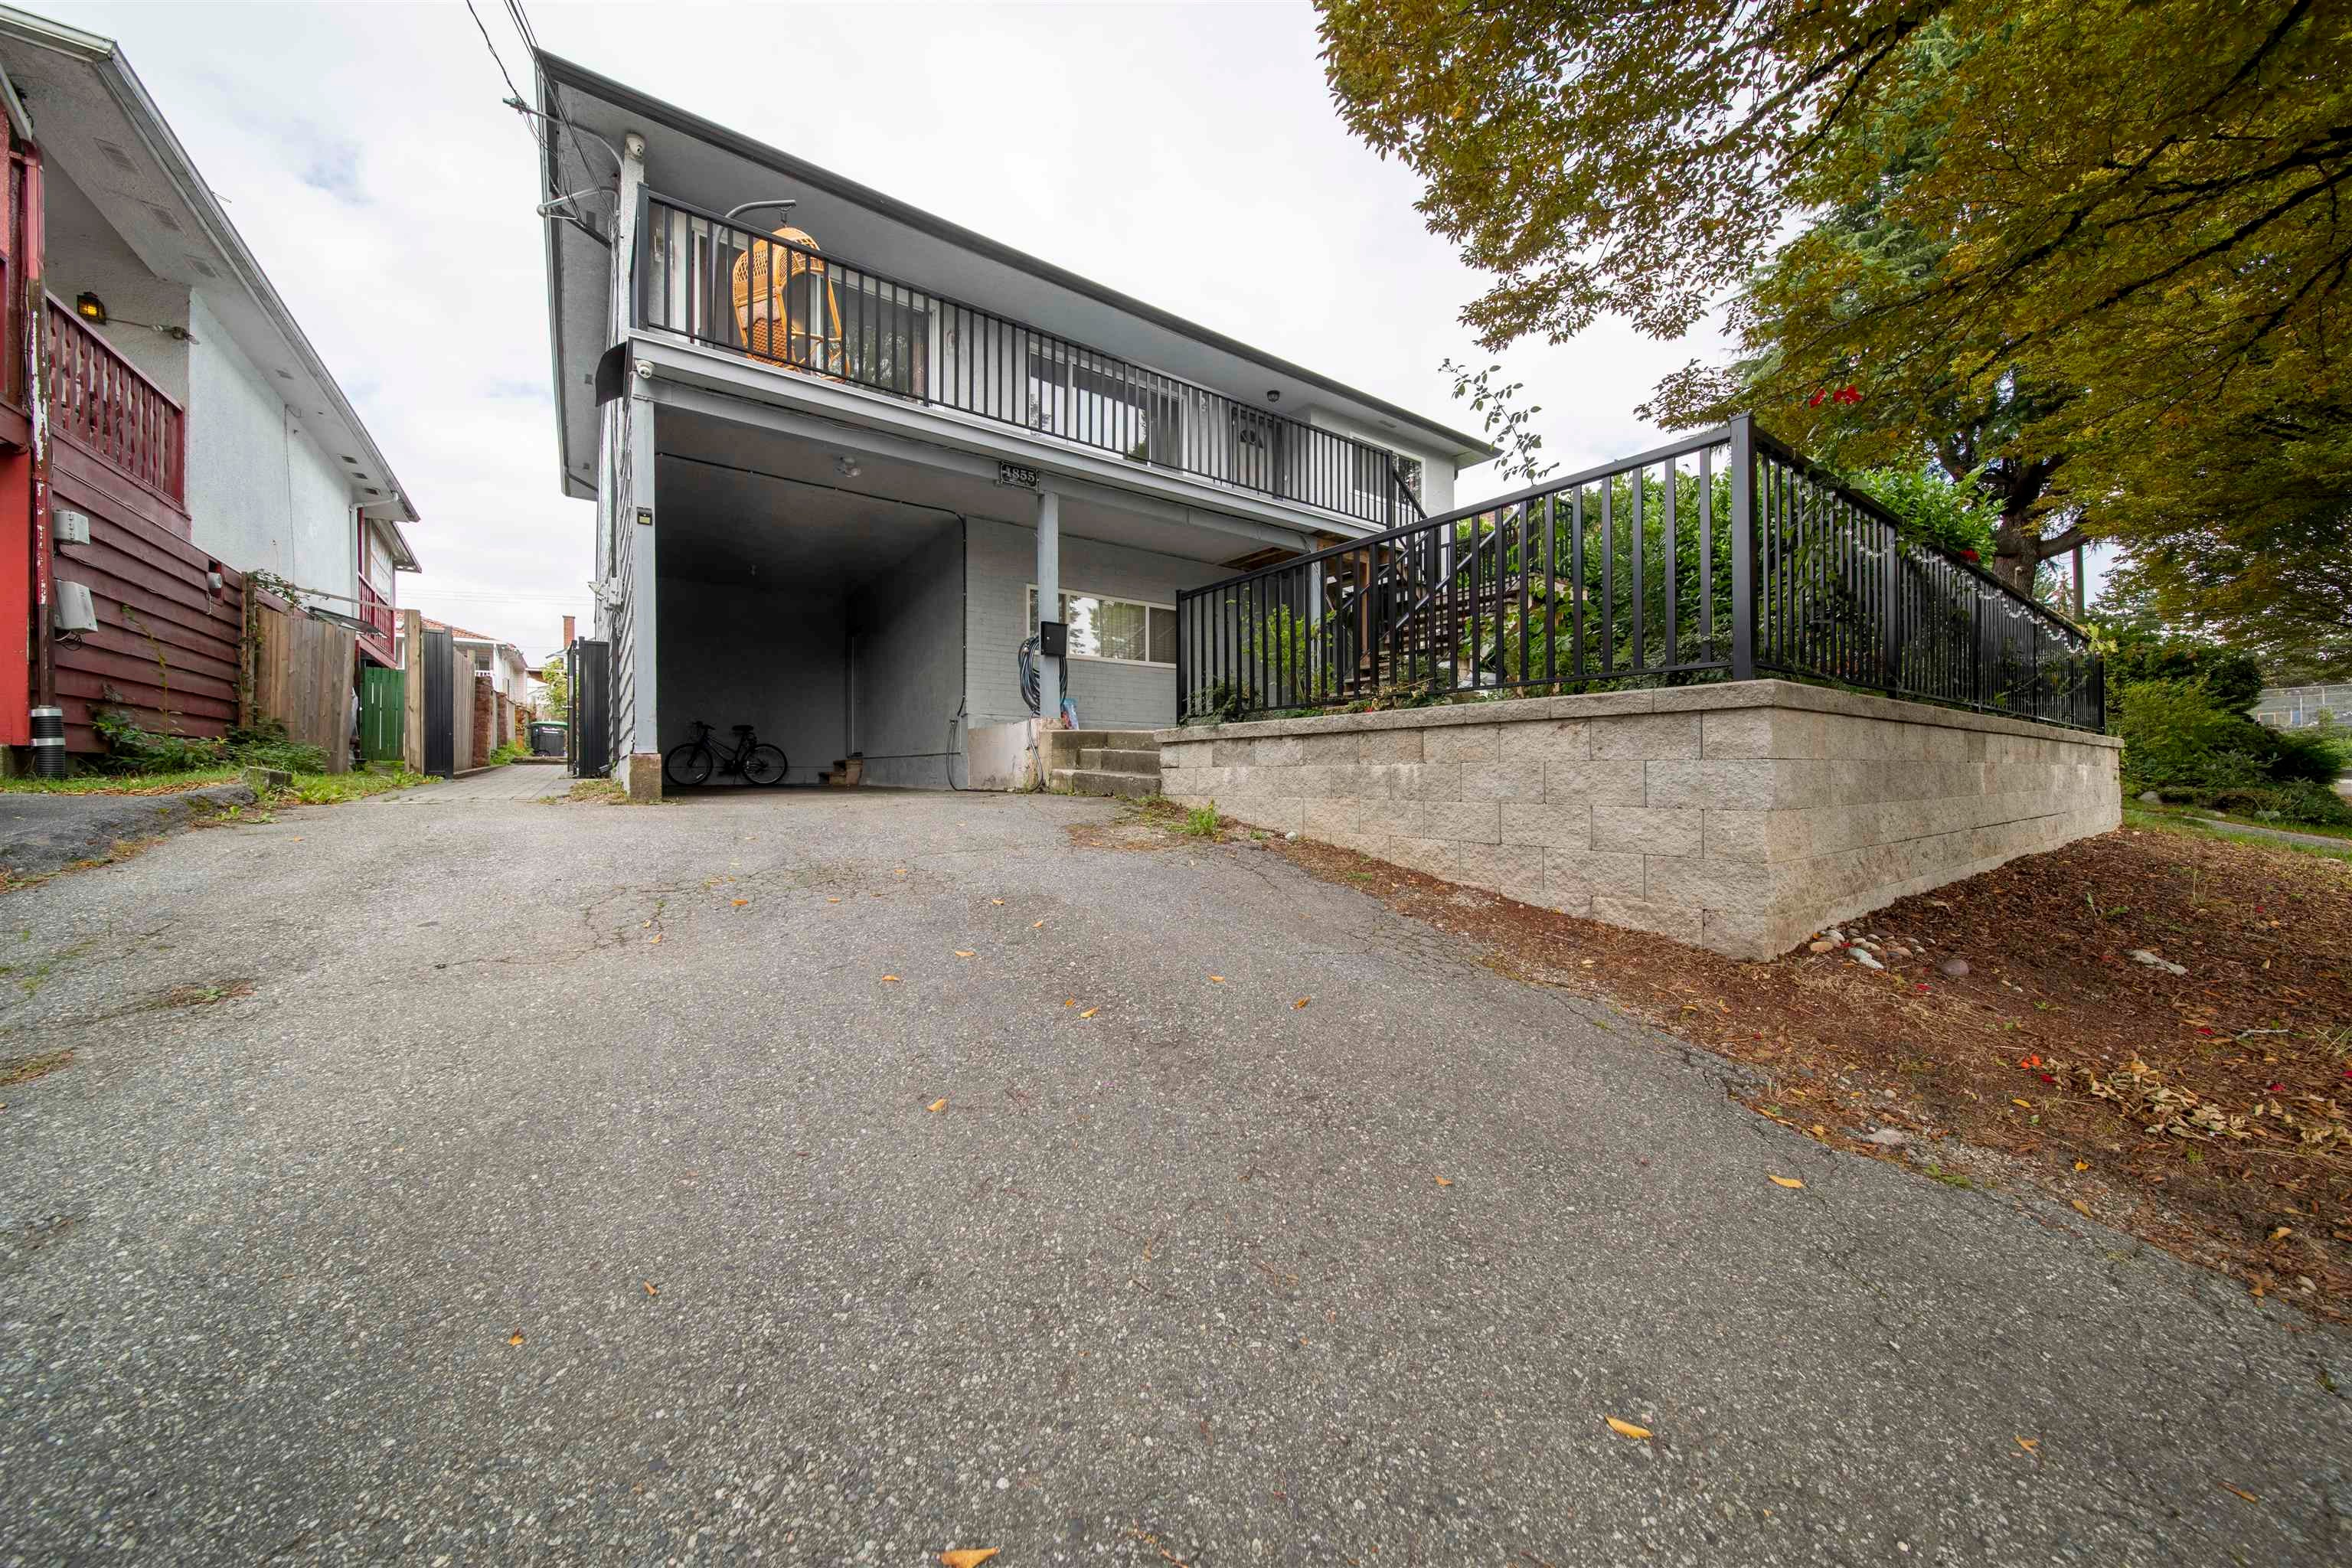 4855 CHATHAM STREET - Collingwood VE House/Single Family for sale, 7 Bedrooms (R2619475) - #1